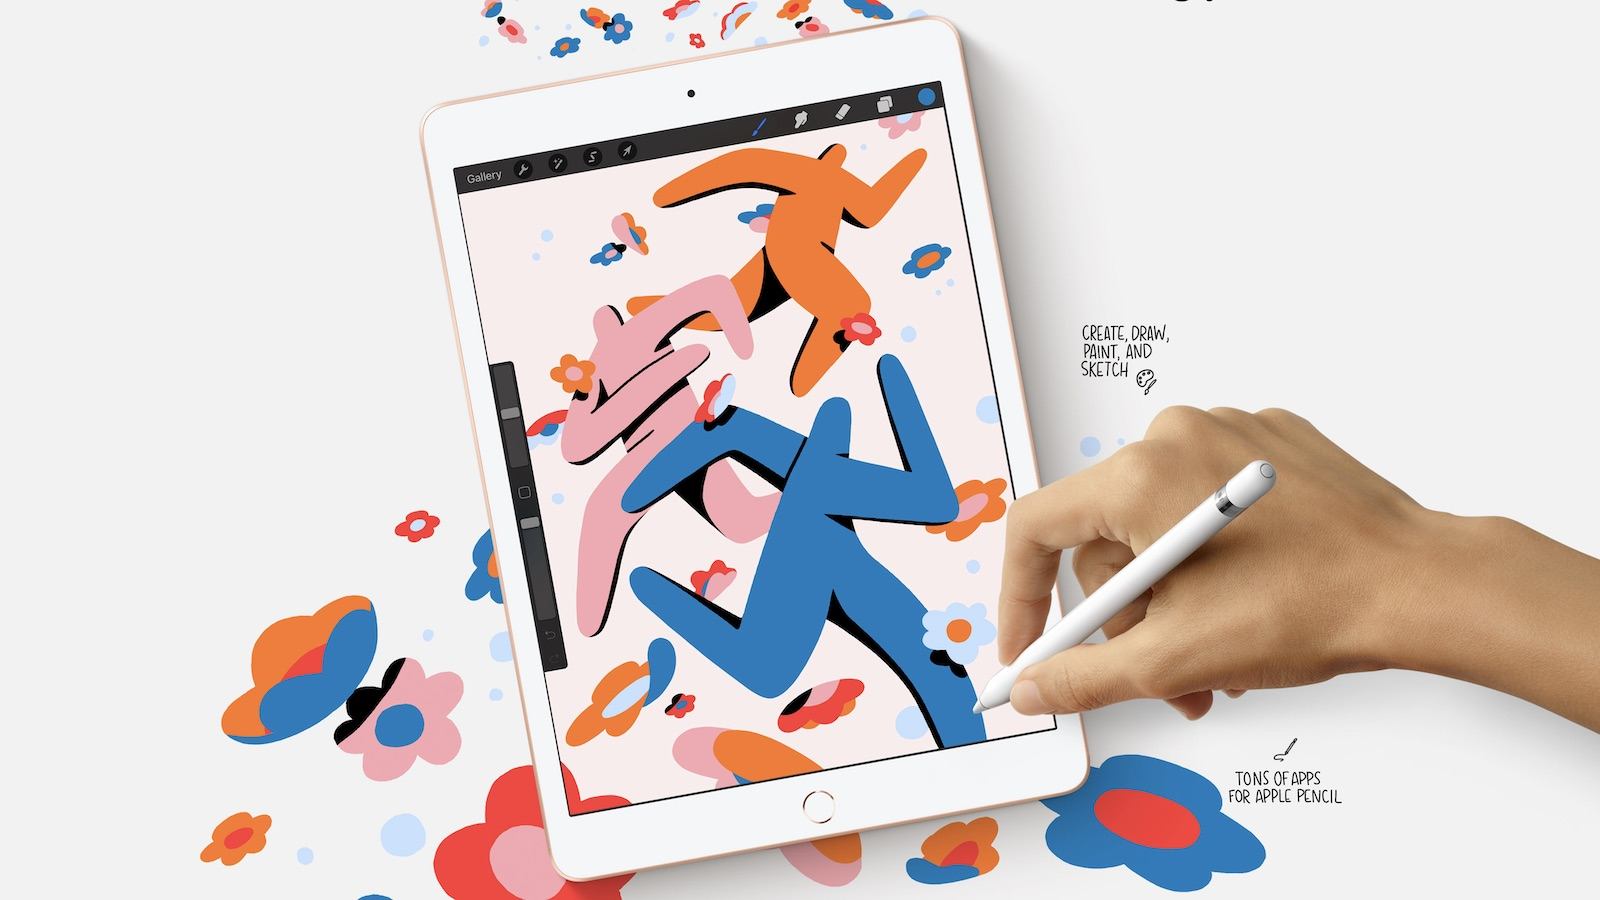 The iPad 8th Generation is built with the powerful A12 bionic chip